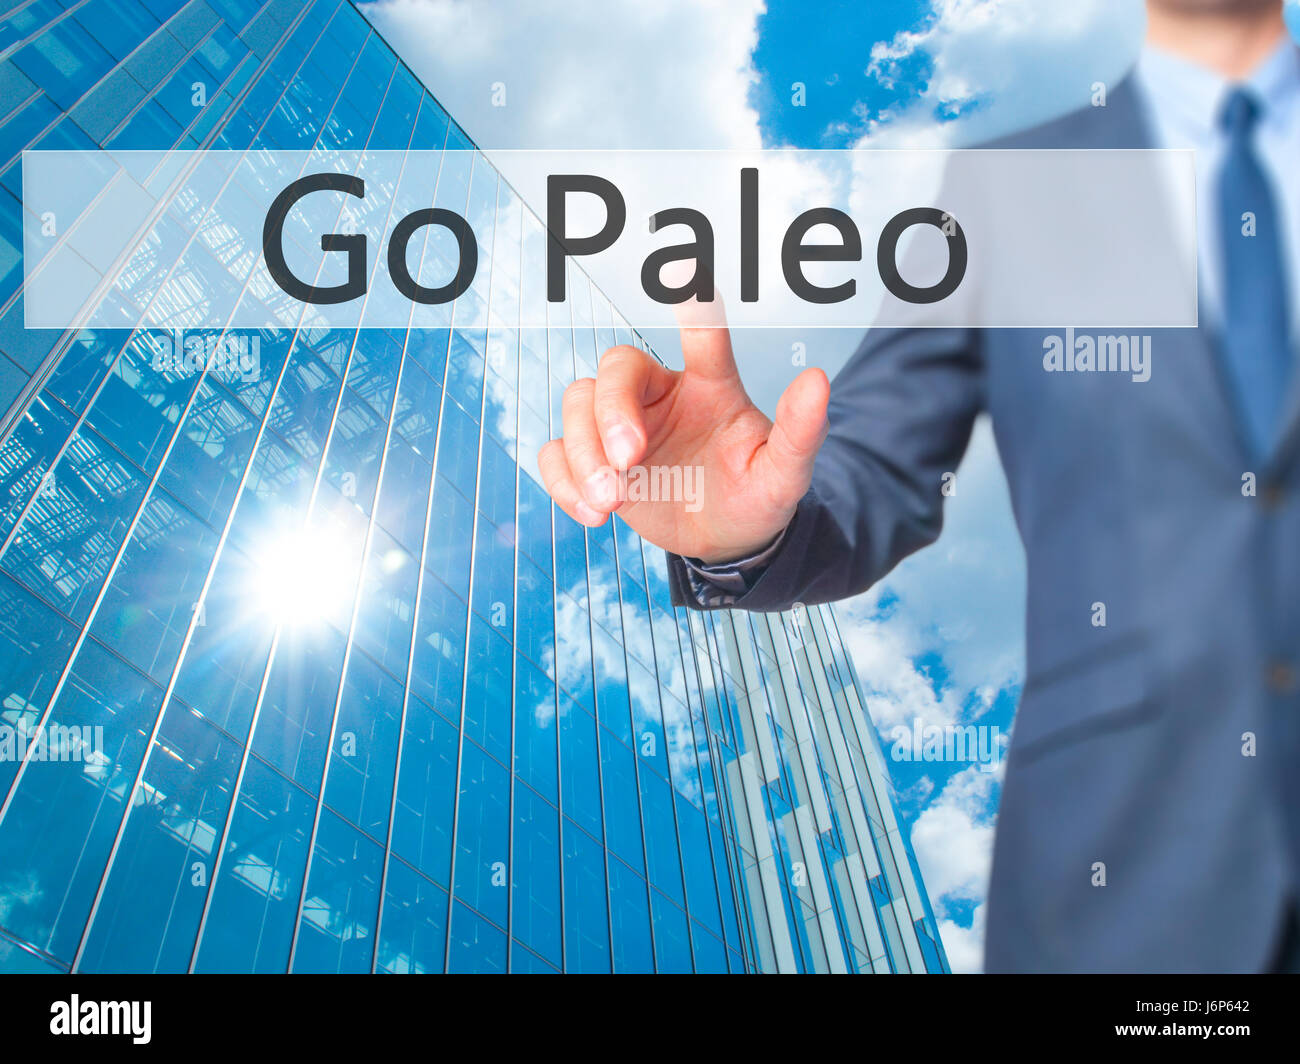 Go Paleo - Businessman hand pressing button on touch screen interface. Business, technology, internet concept. Stock - Stock Image